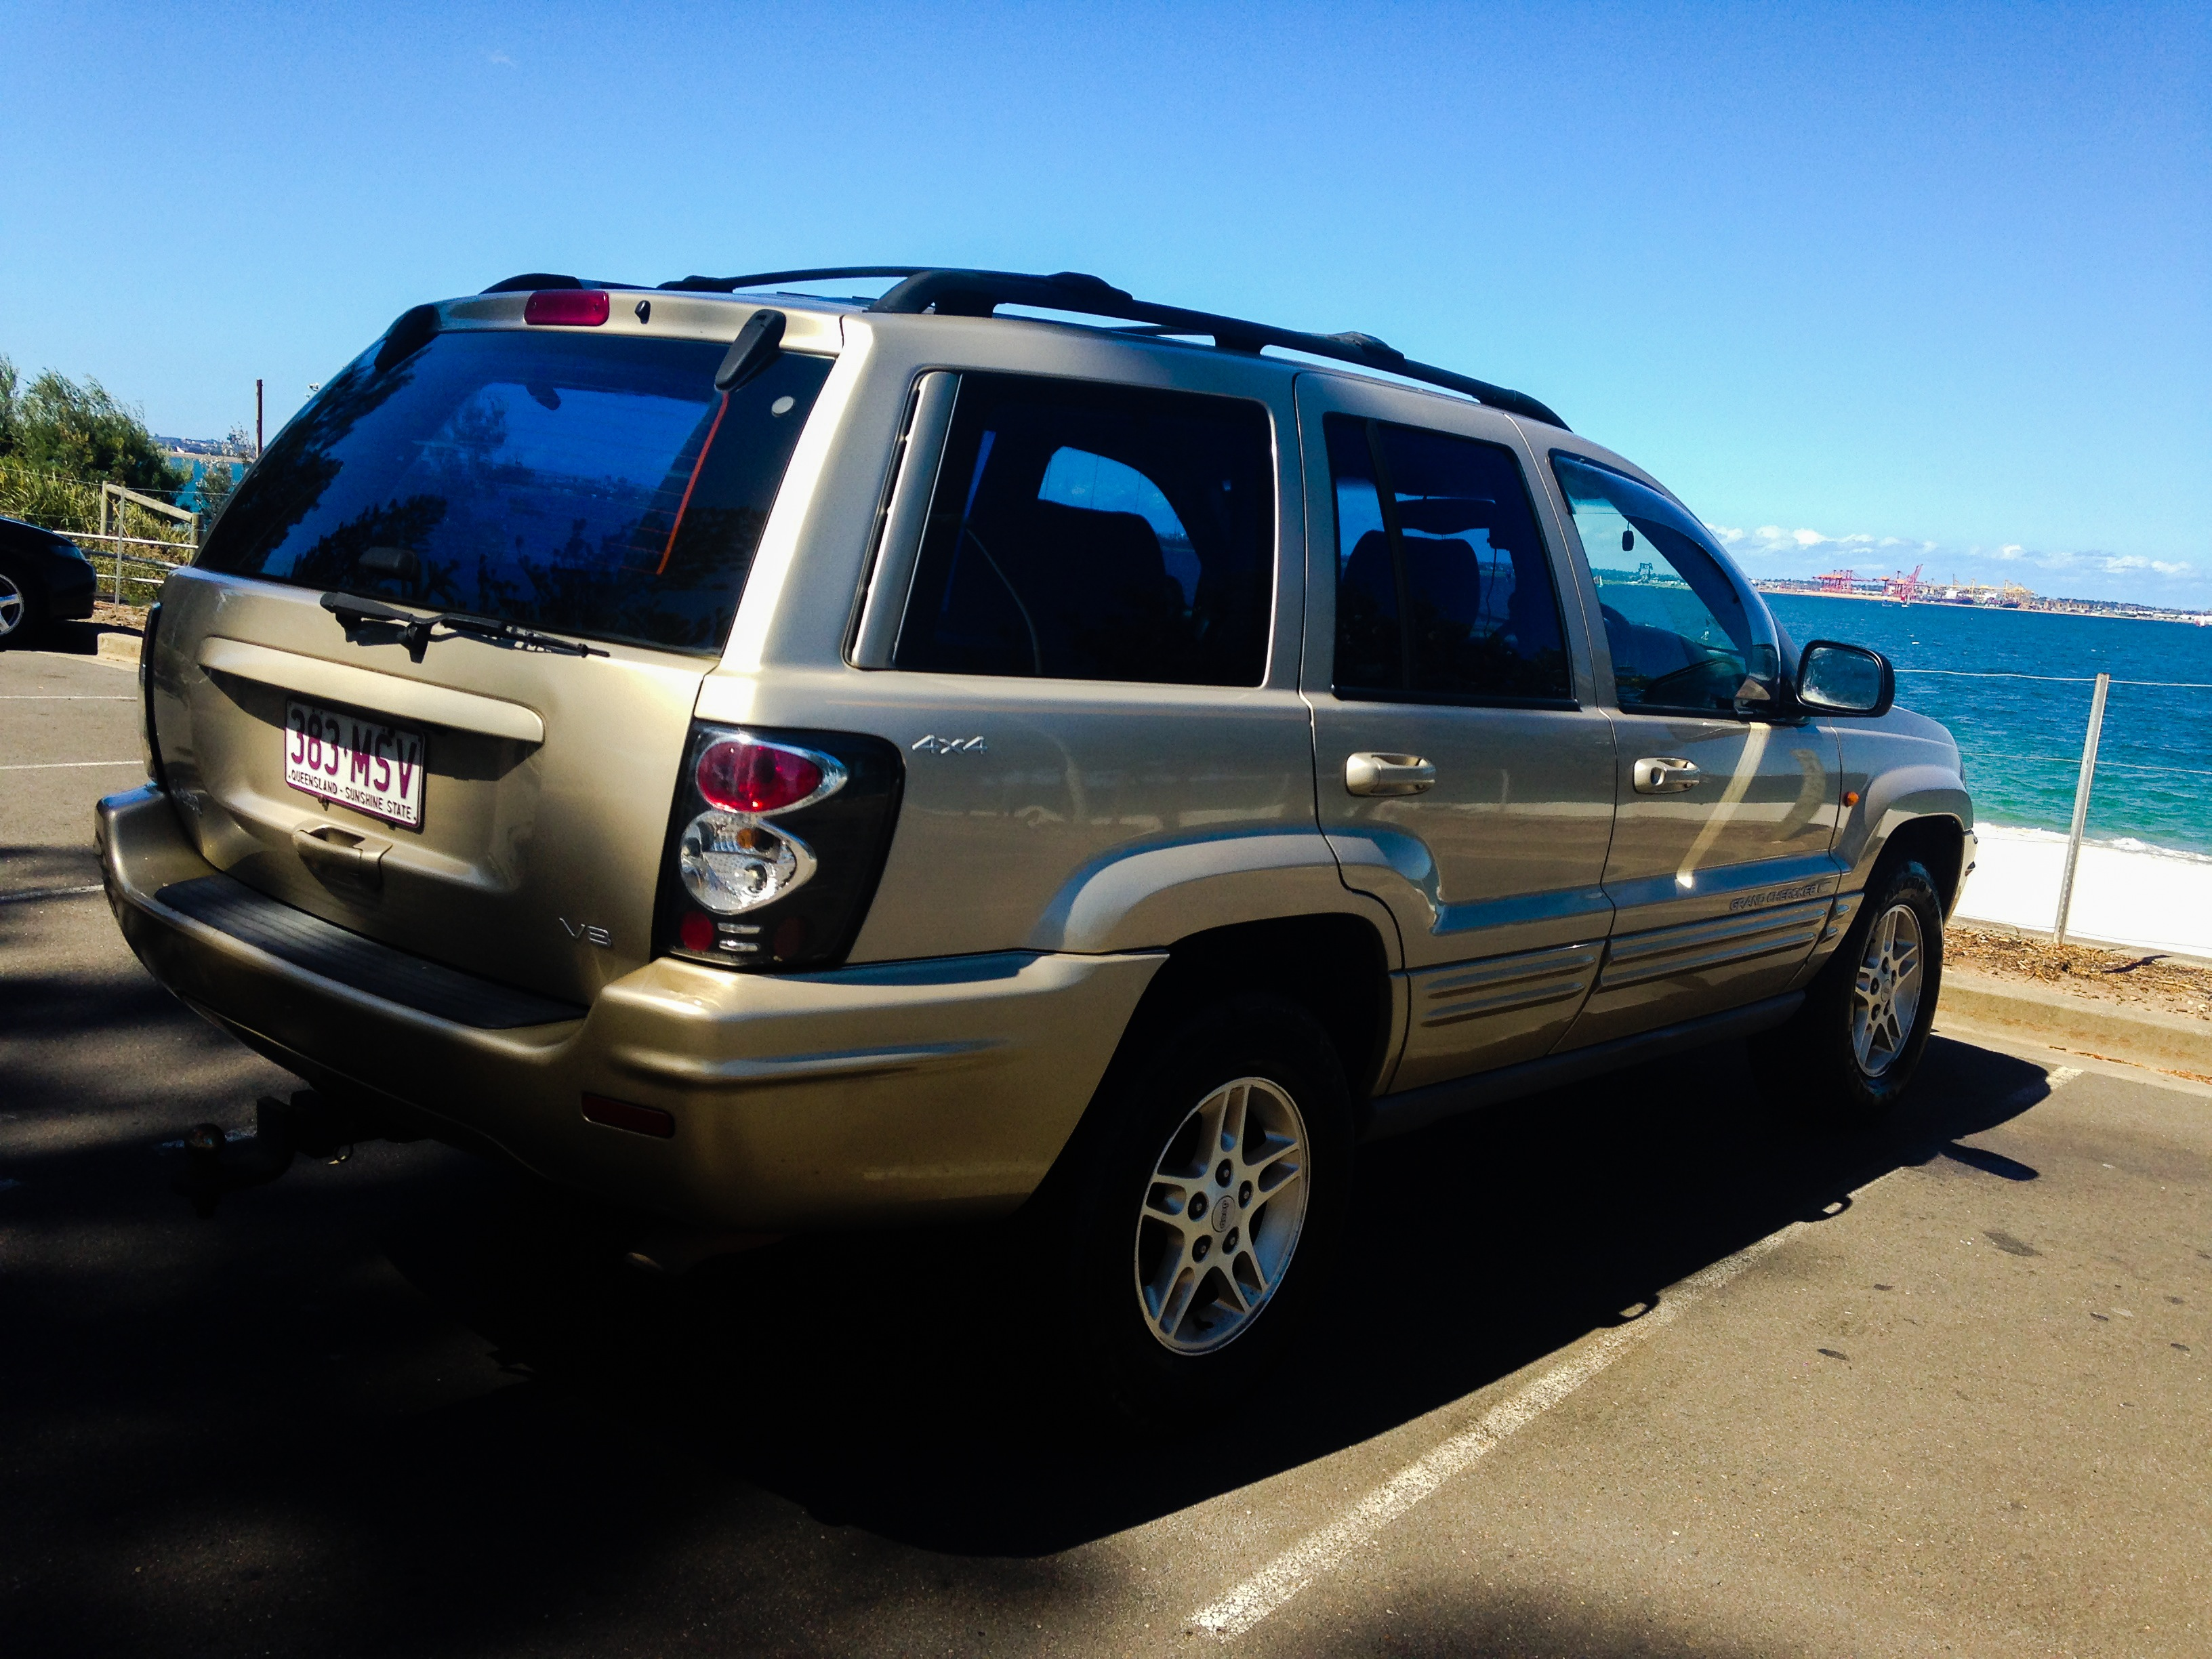 1999 jeep grand cherokee limited 4x4 wj car sales nsw sydney. Cars Review. Best American Auto & Cars Review